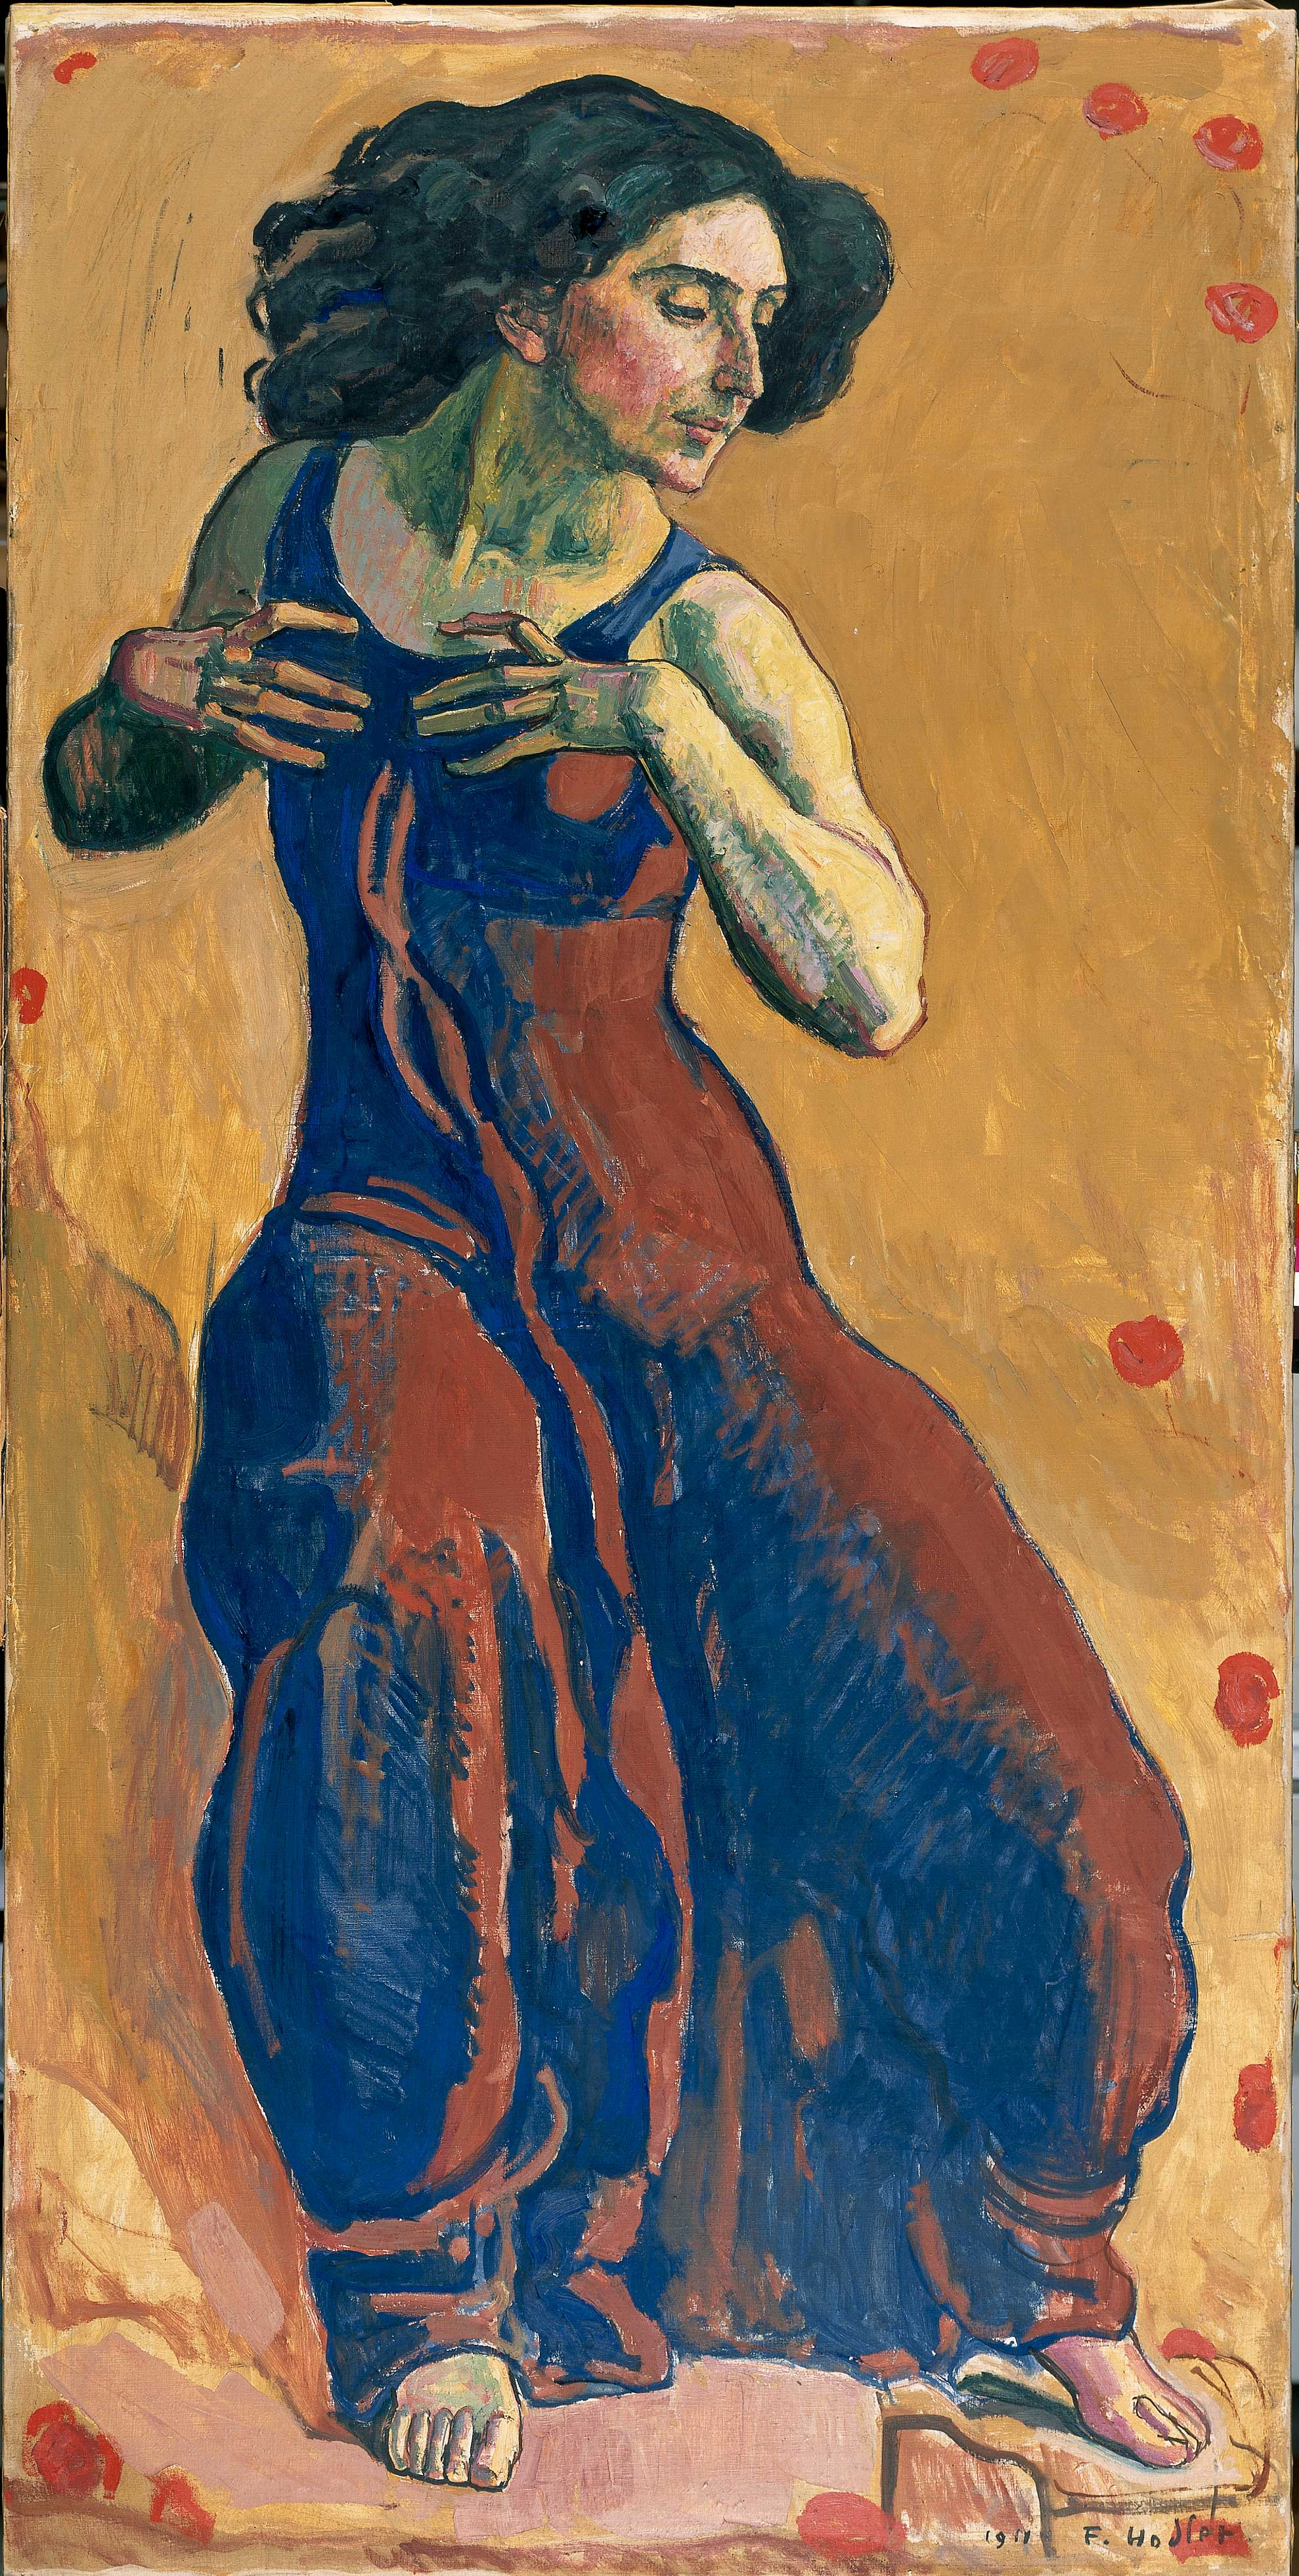 Painting of a woman dancing against a brightly colored background